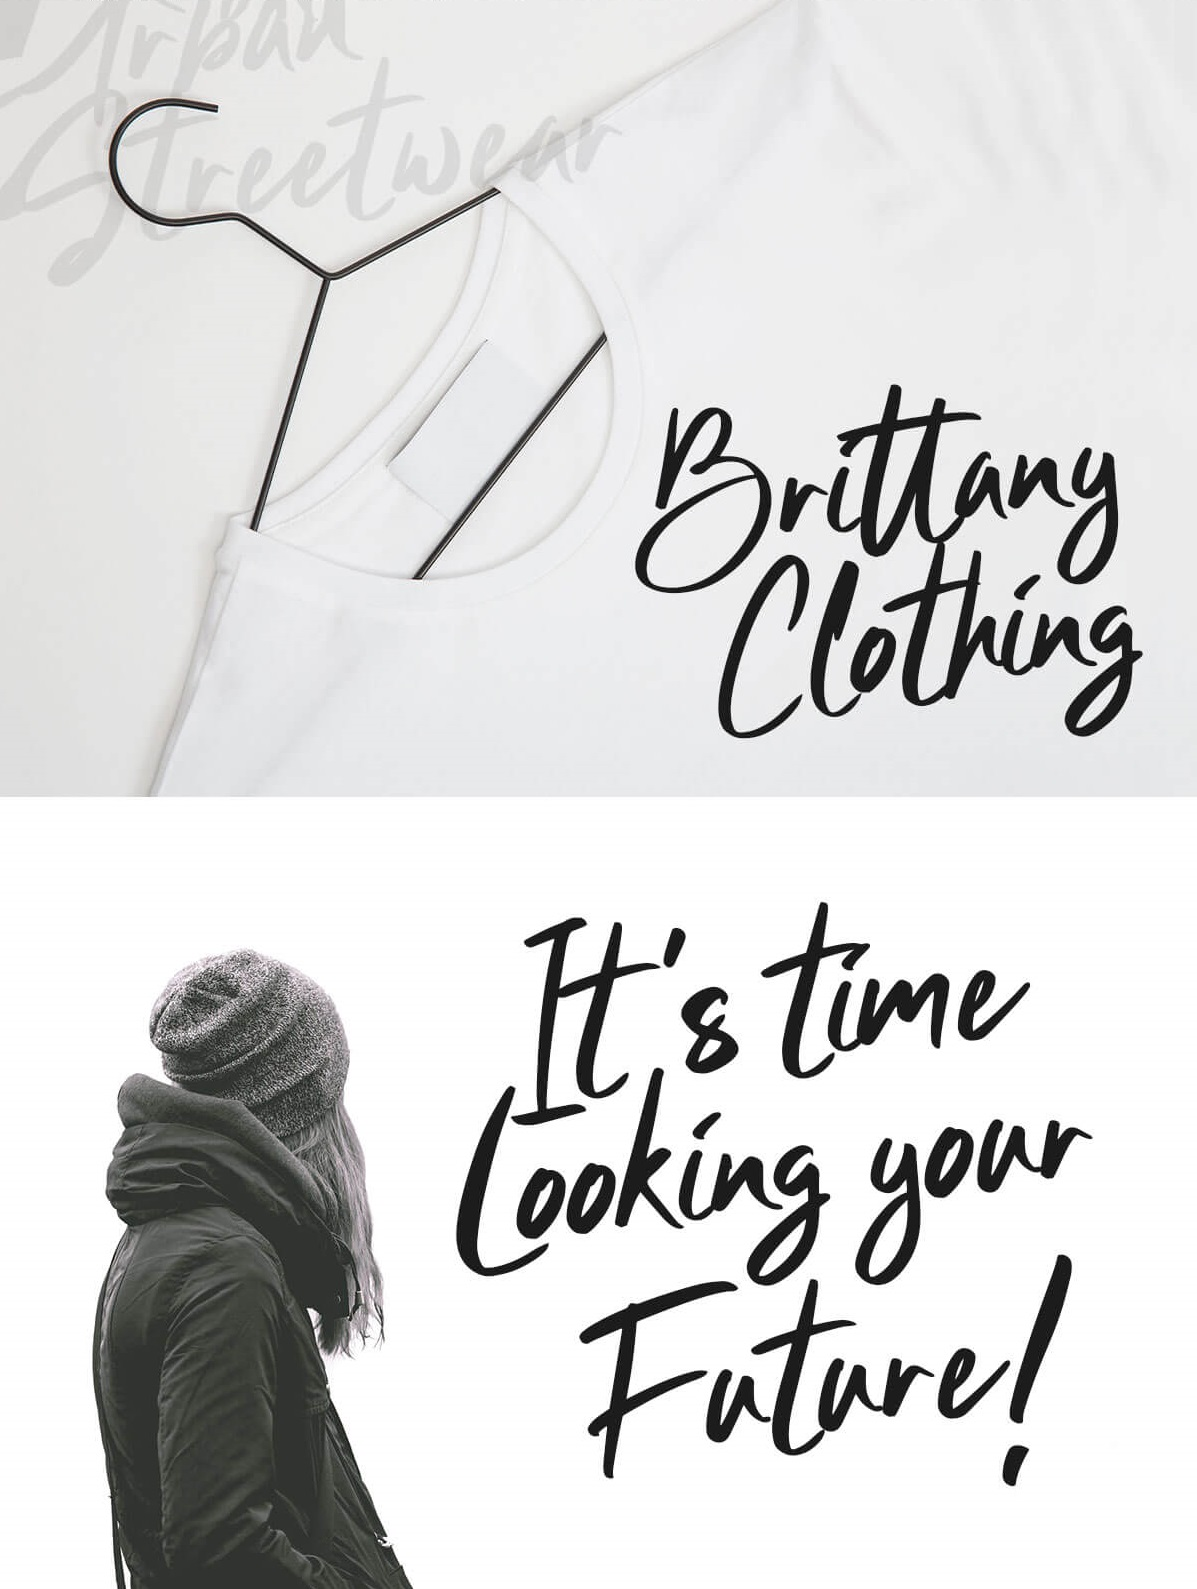 Free-Clattering-Brush-Font-2 cropped